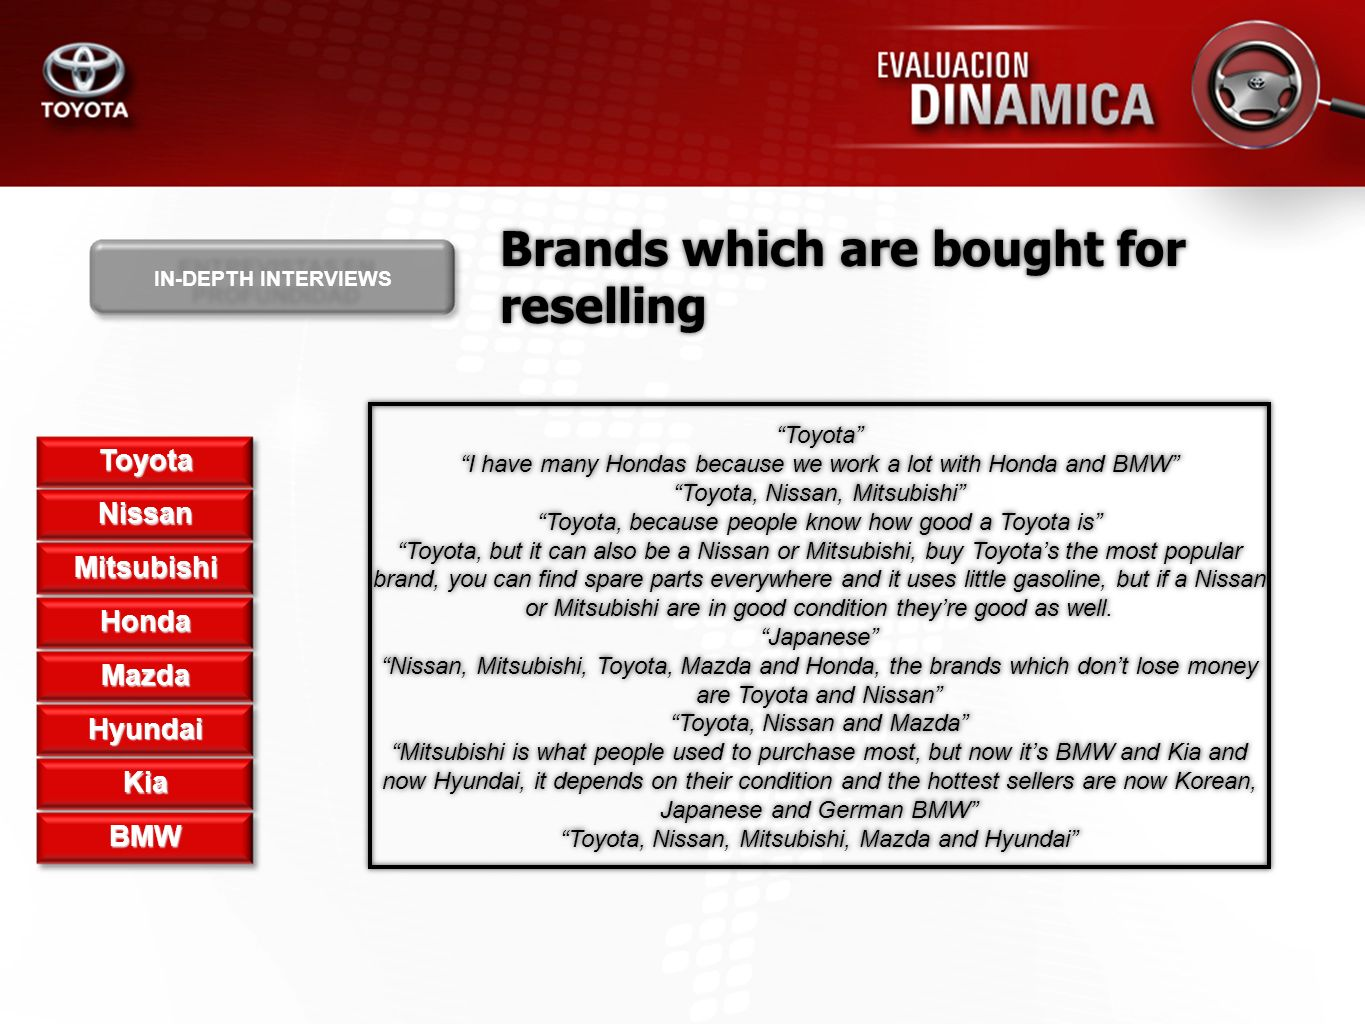 Brands which are bought for reselling